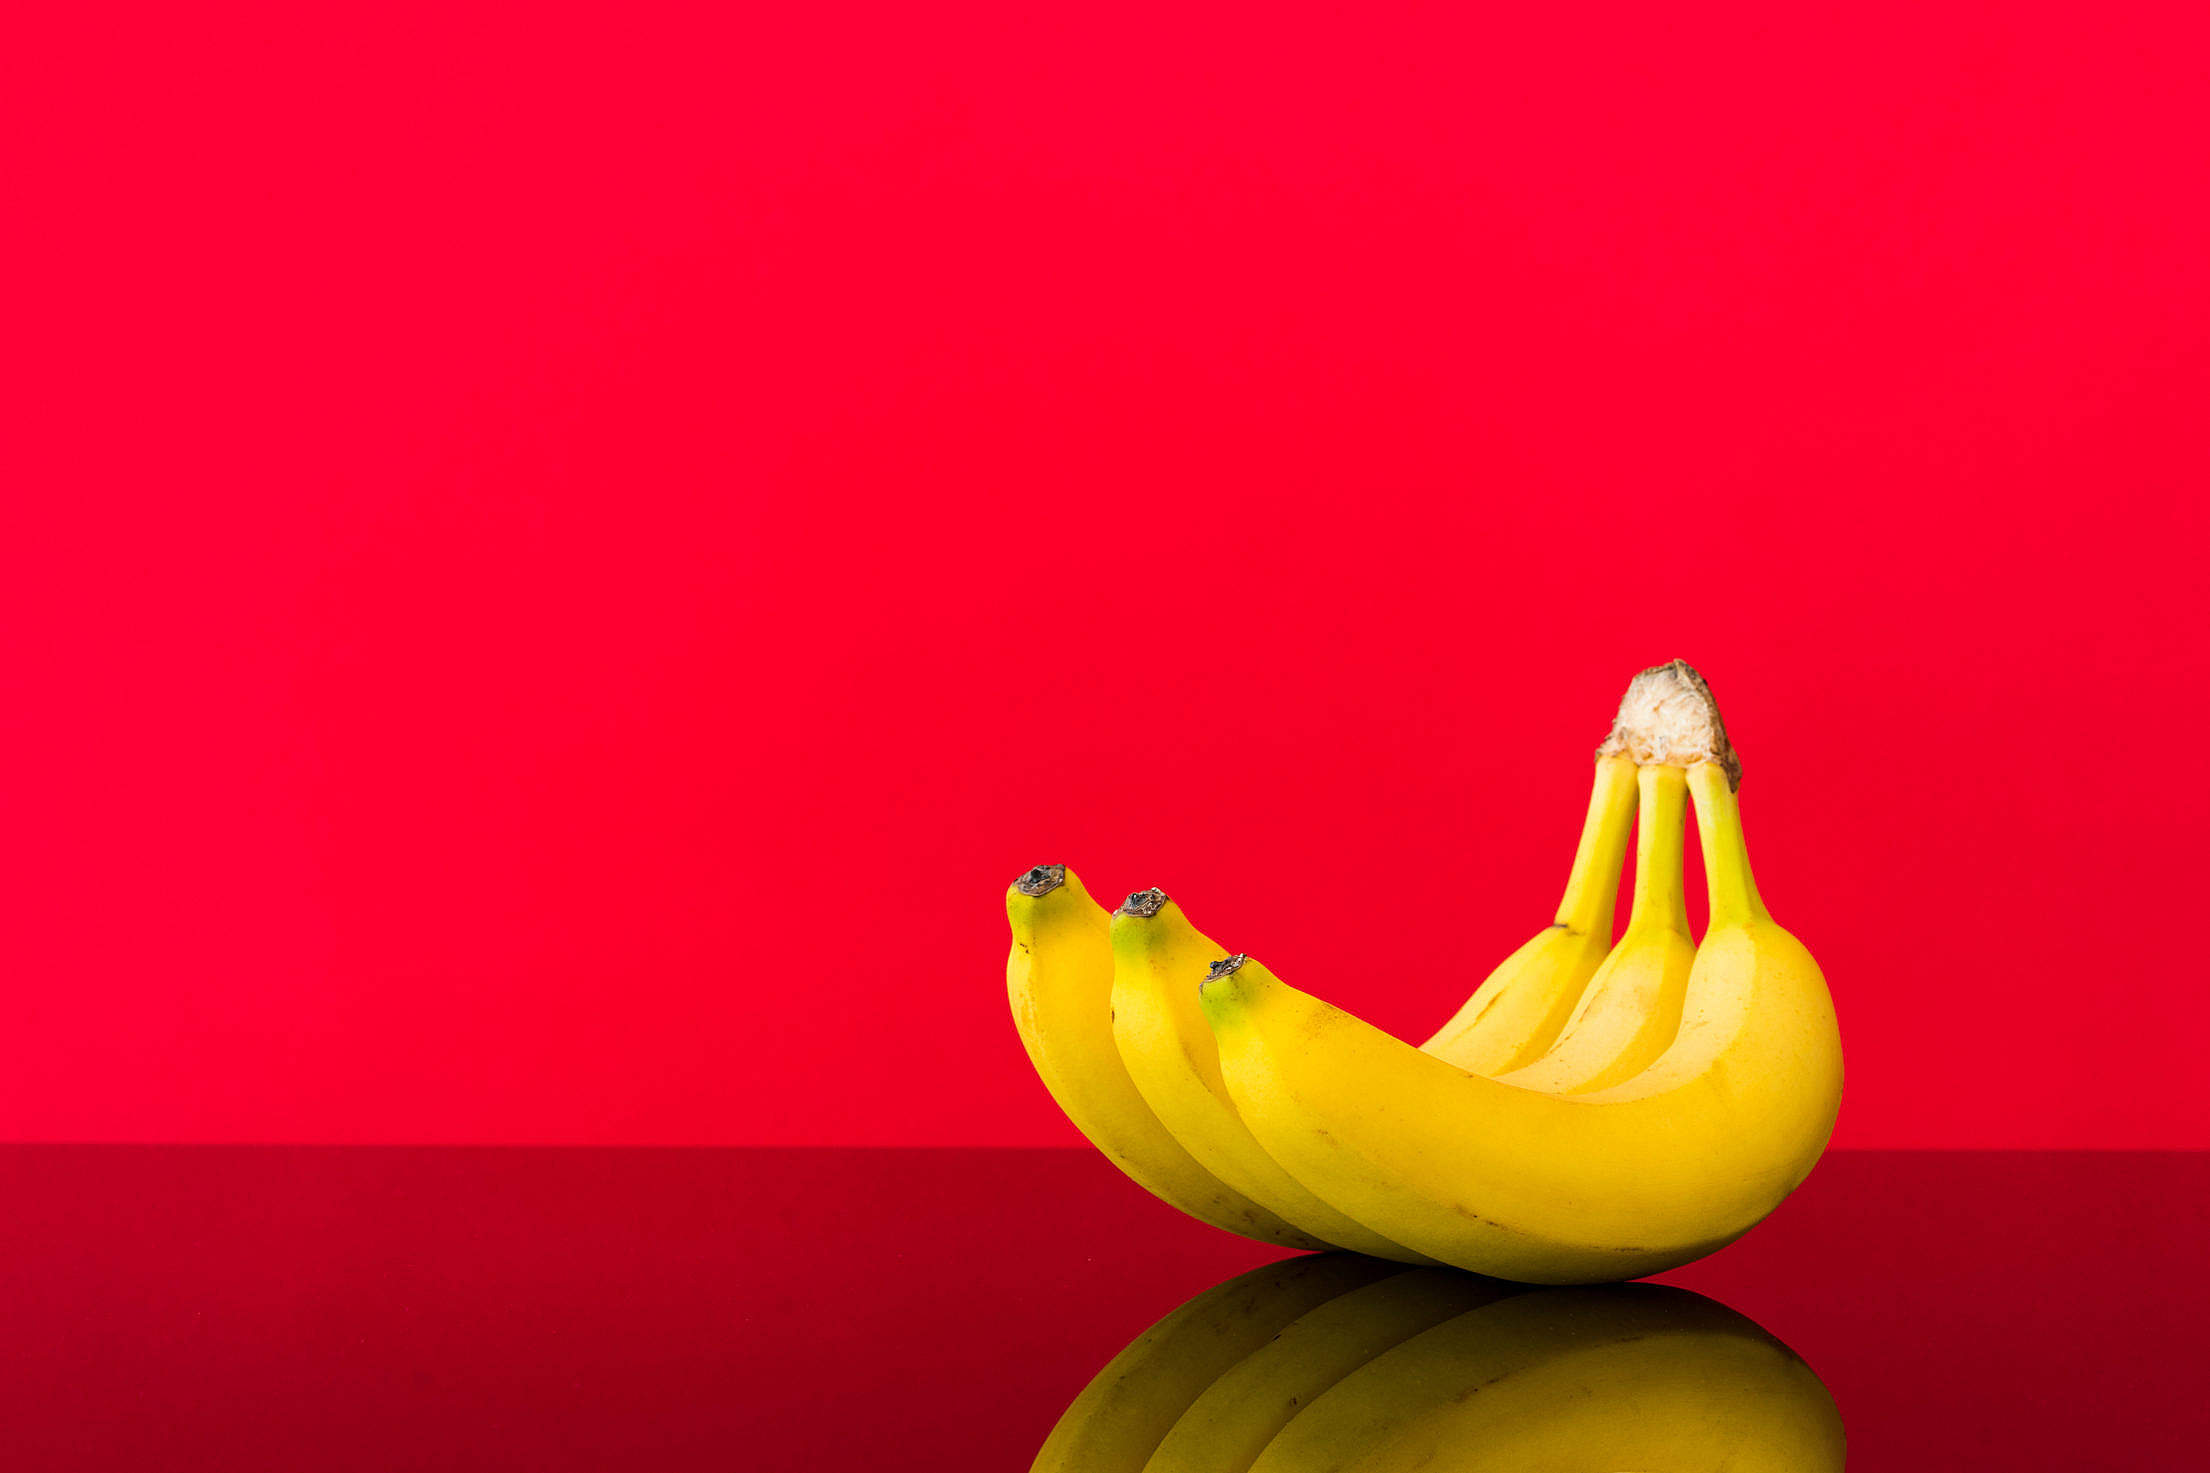 Fresh Bananas on Glossy Table and Red Background Free Stock Photo